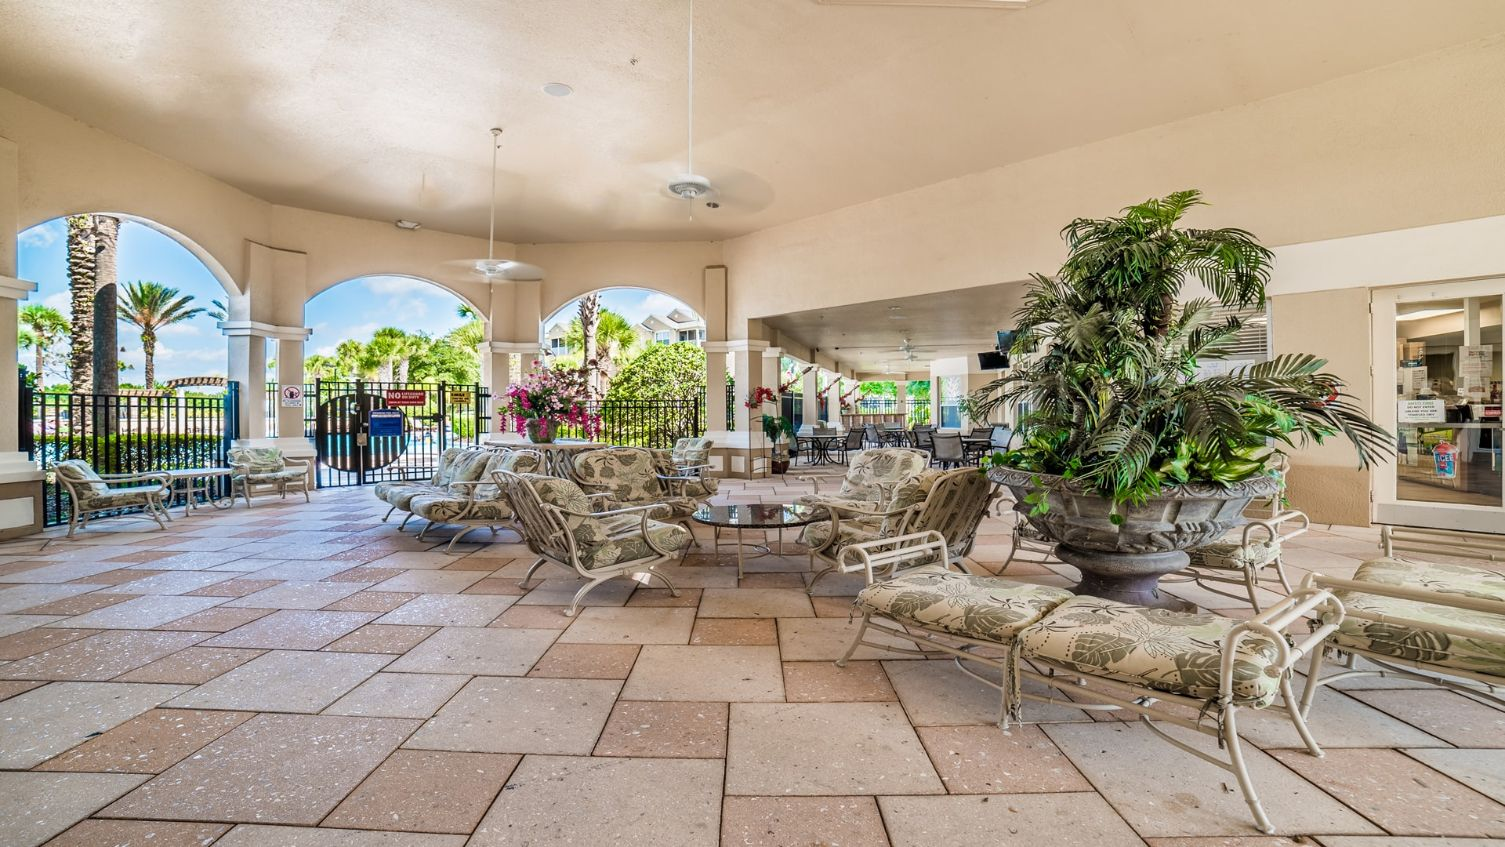 windsor hills resort outdoor lounge and seating